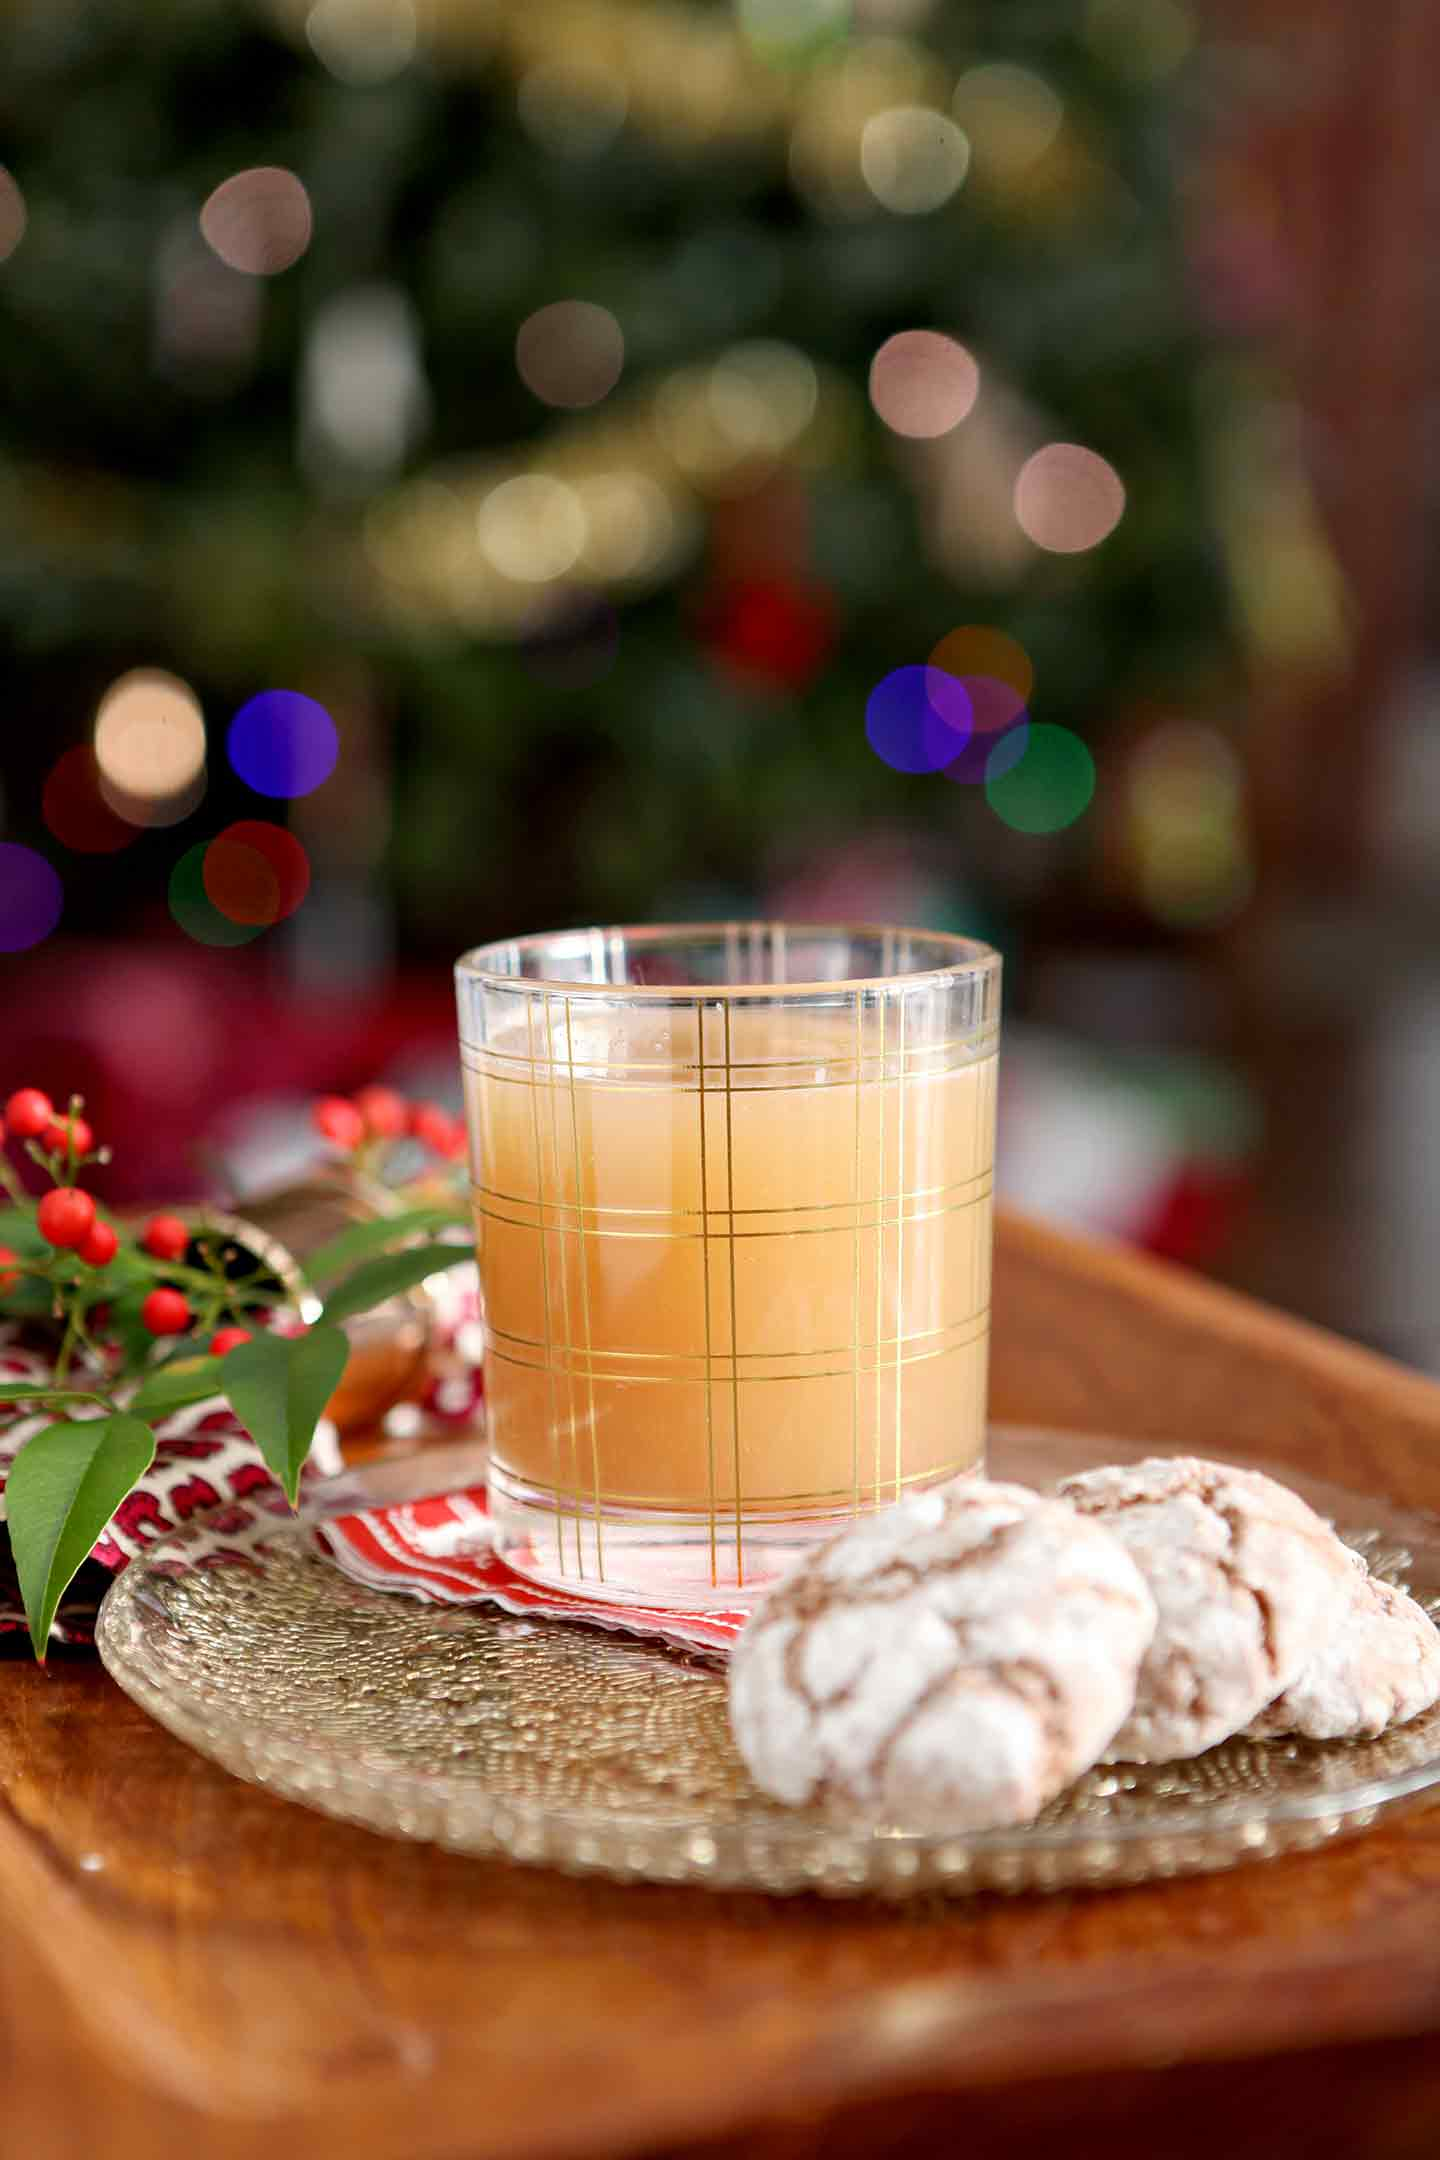 Instead of milk and cookies for Santa, leave him a glass of Vegan Bourbon Pecan Milk Punch this Christmas. This twist on the classic New Orleans cocktail is VEGAN. Homemade pecan milk, made with pecans, rice, cinnamon and maple syrup, serves as the base of the drink. Combine the pecan milk with bourbon, amaretto, maple syrup and a little vanilla extract before shaking to combine. Serve cold with a favorite cookie throughout the chilly winter months.